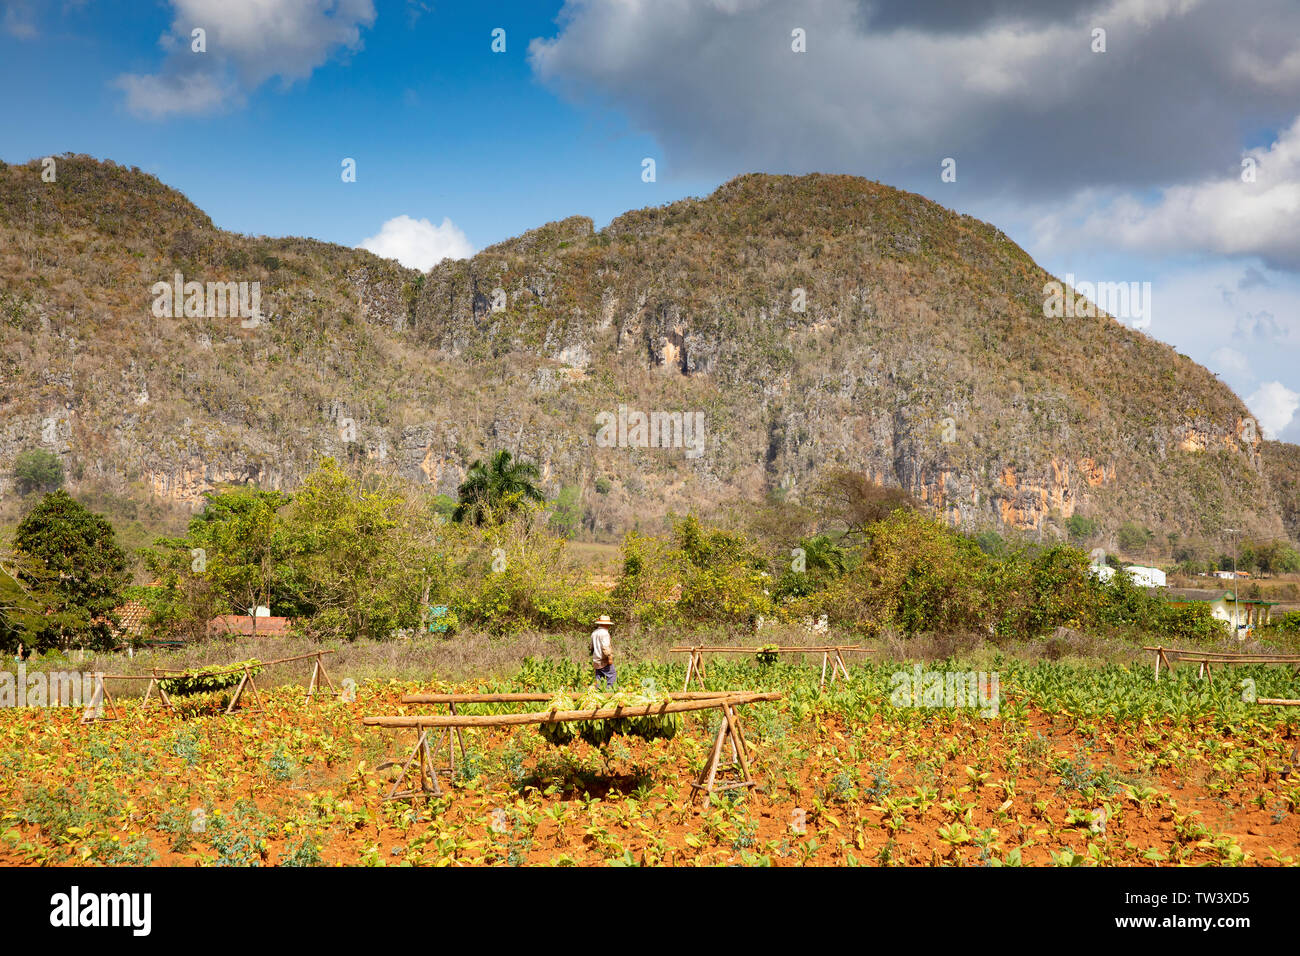 Tobacco leaves being picked to go into the Drying house at Casa del Veguero, Tobacco drying house in the Vinales Valley. - Stock Image